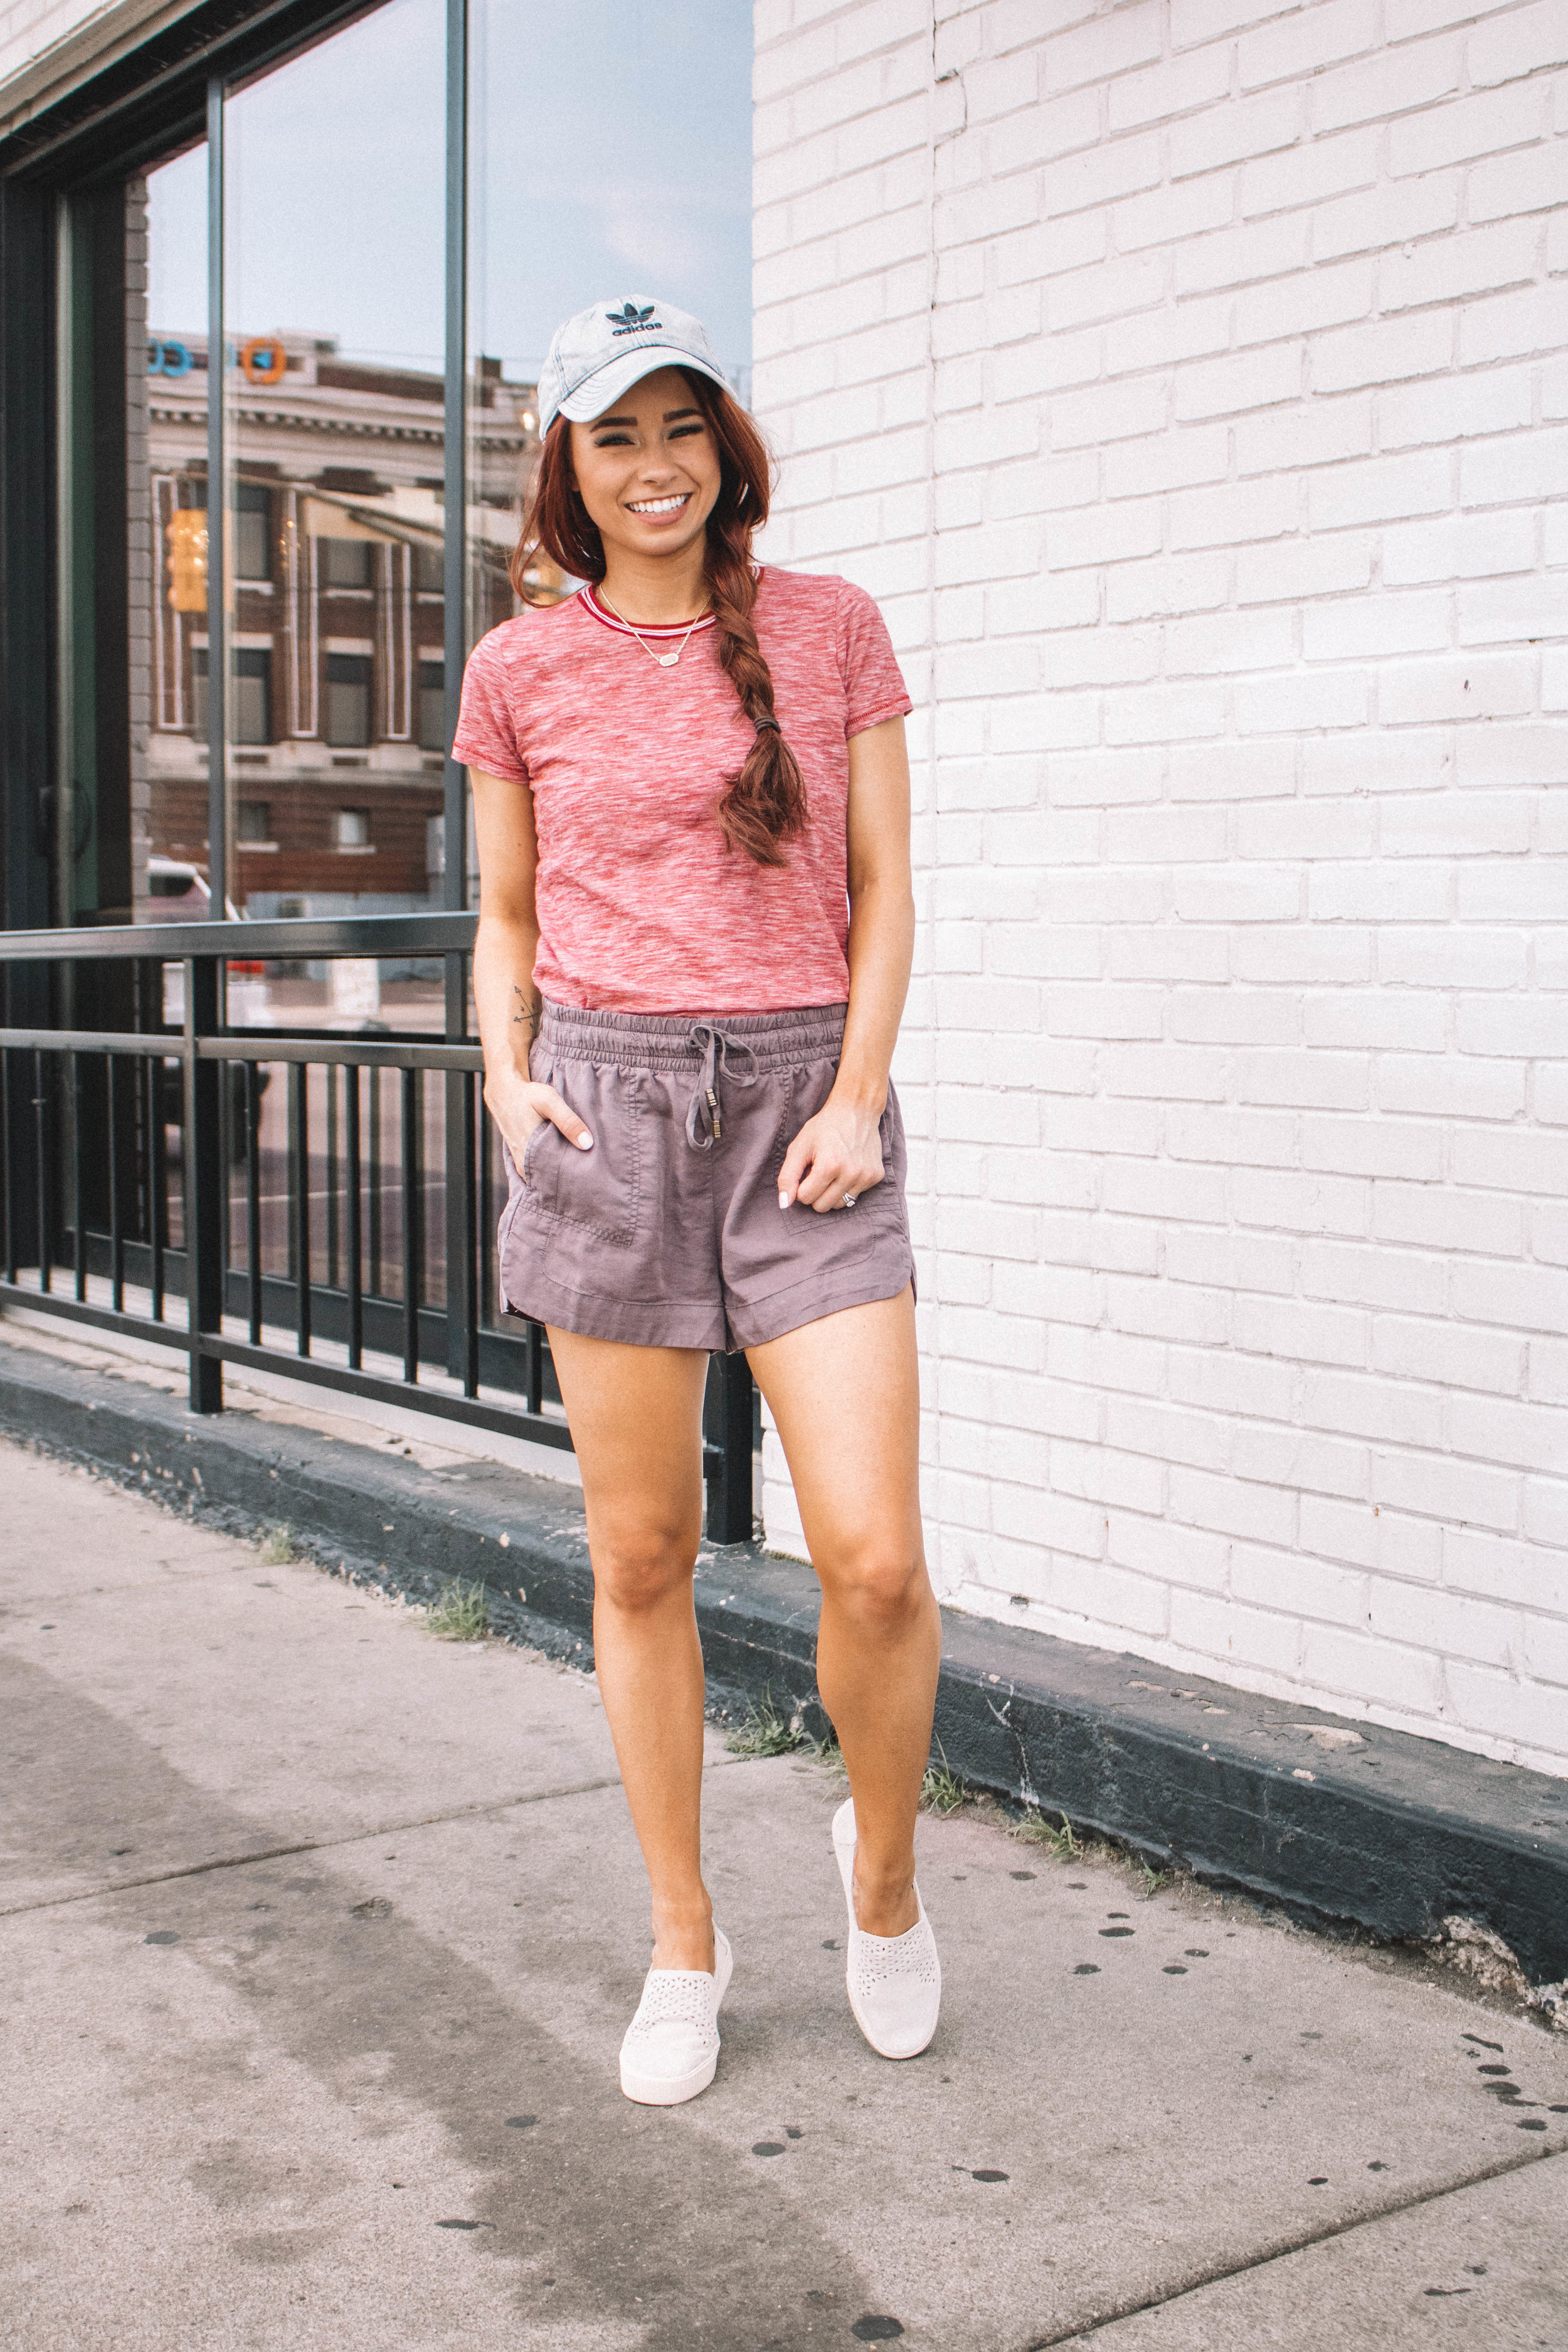 Magnolia Boutique Summer Shorts styled by popular Indianapolis fashion blogger, Trendy in Indy